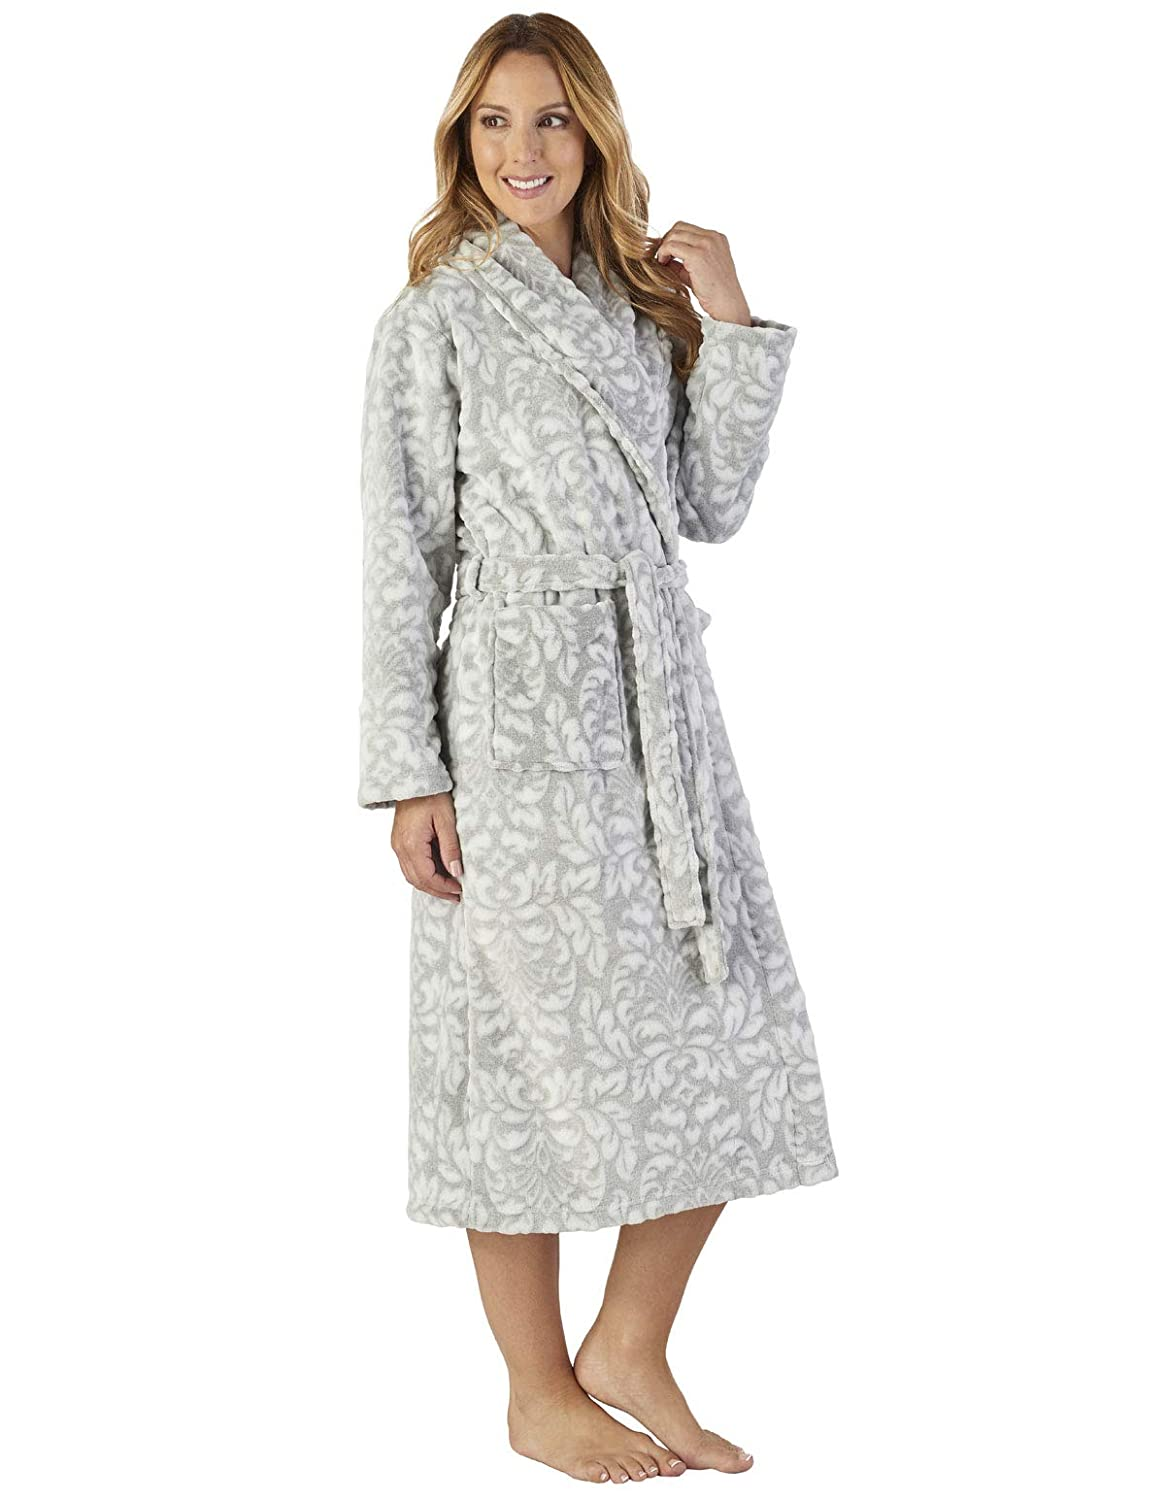 Slenderella HC2351 Women's Luxury Fleece Motif Robe Loungewear Bath Dressing Gown